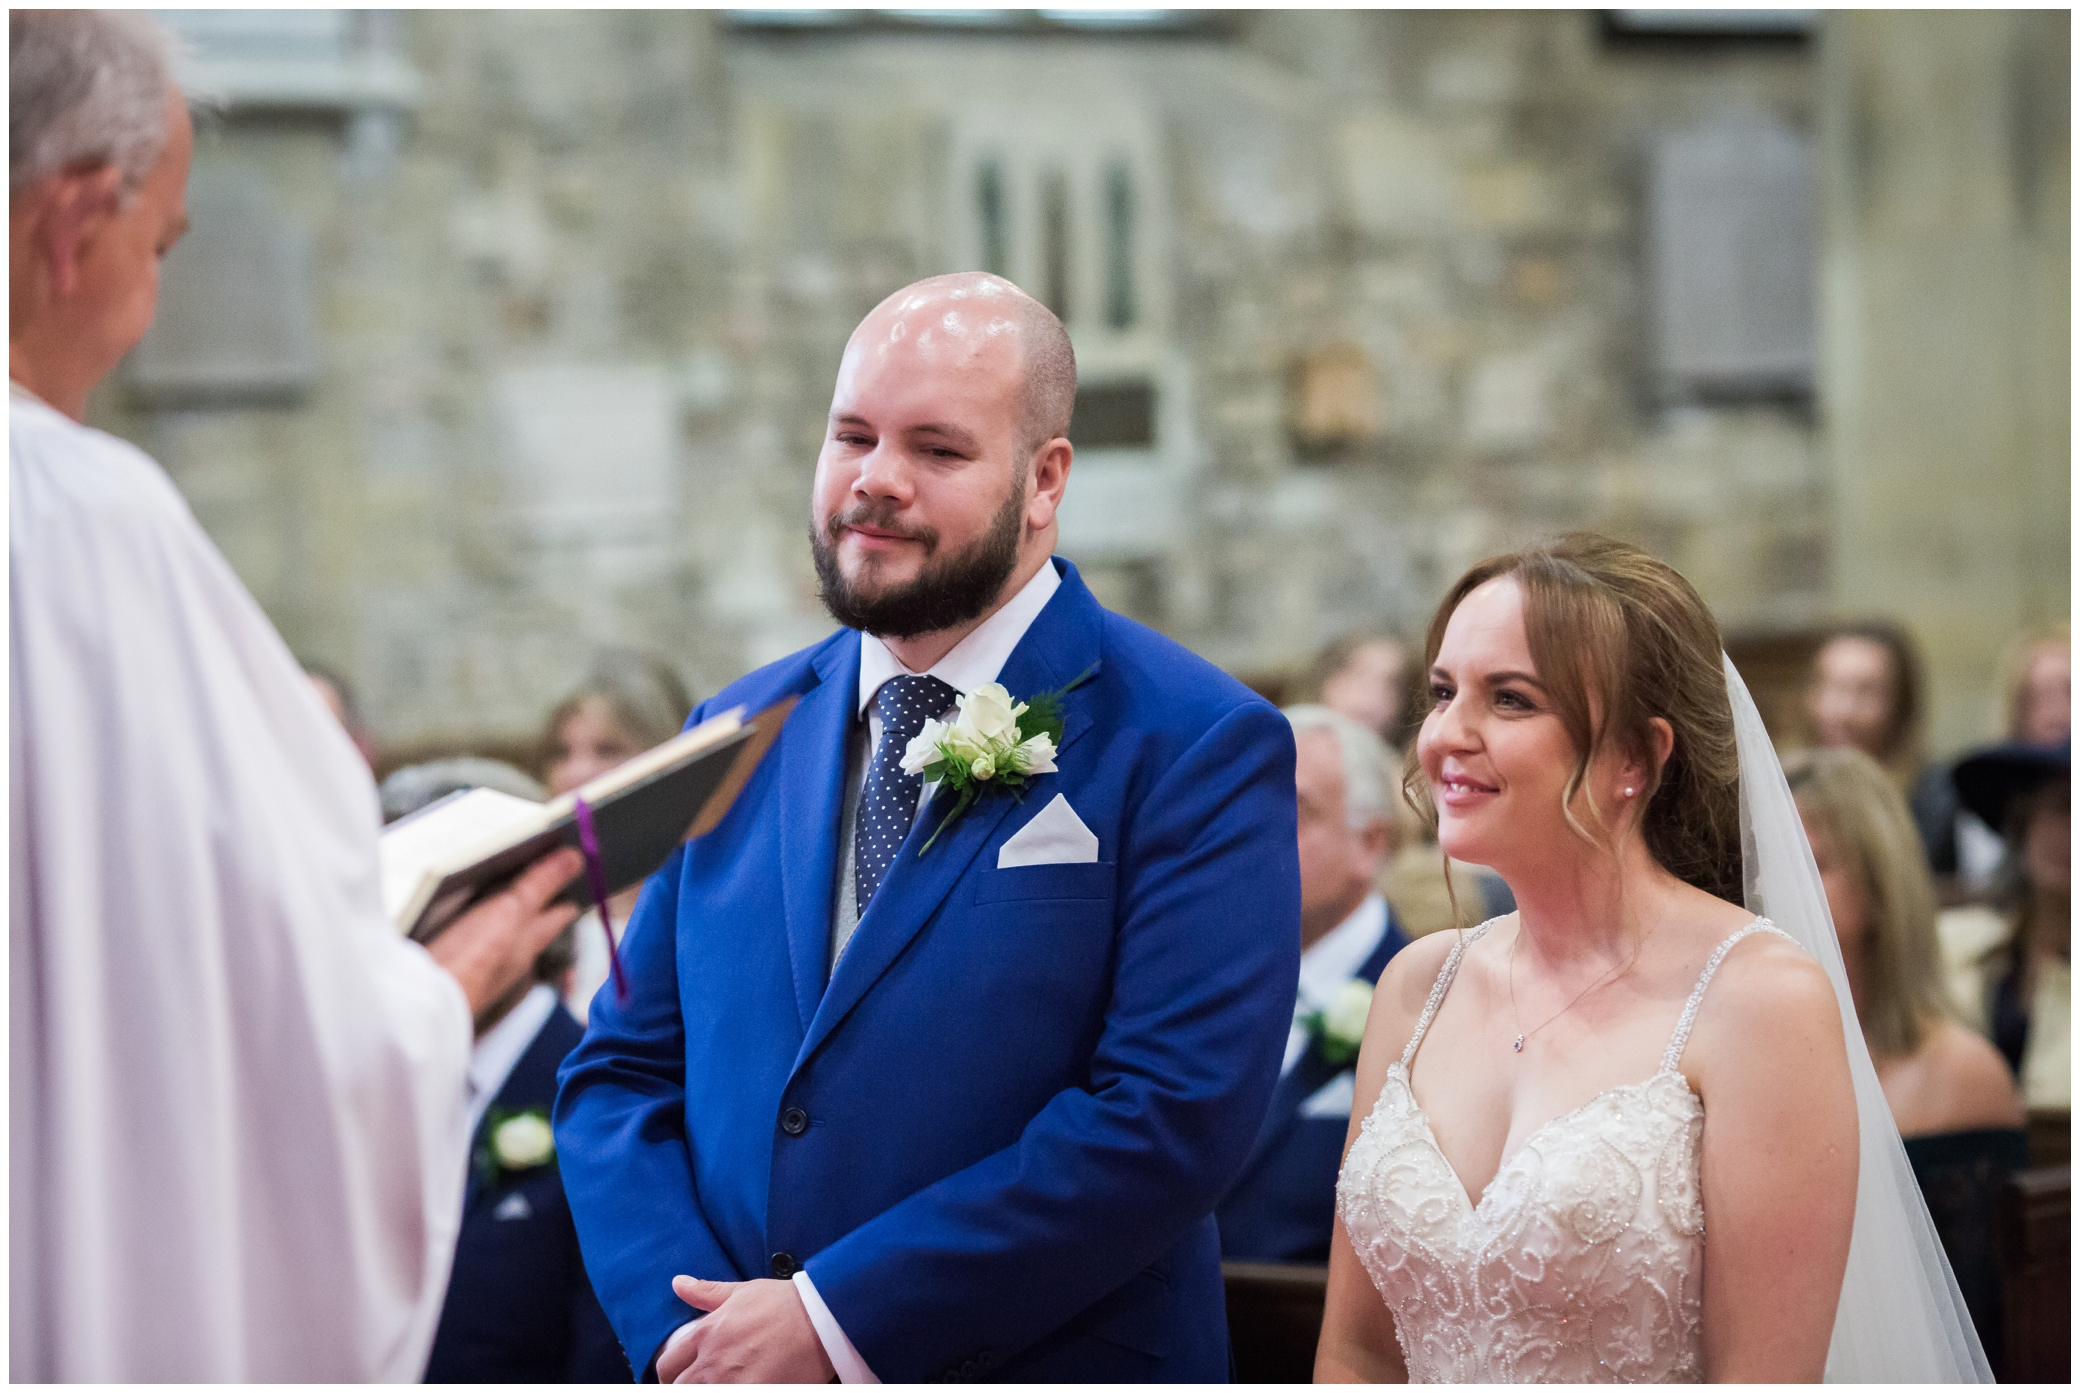 Couple getting married at St Swithun's church in East Grinstead